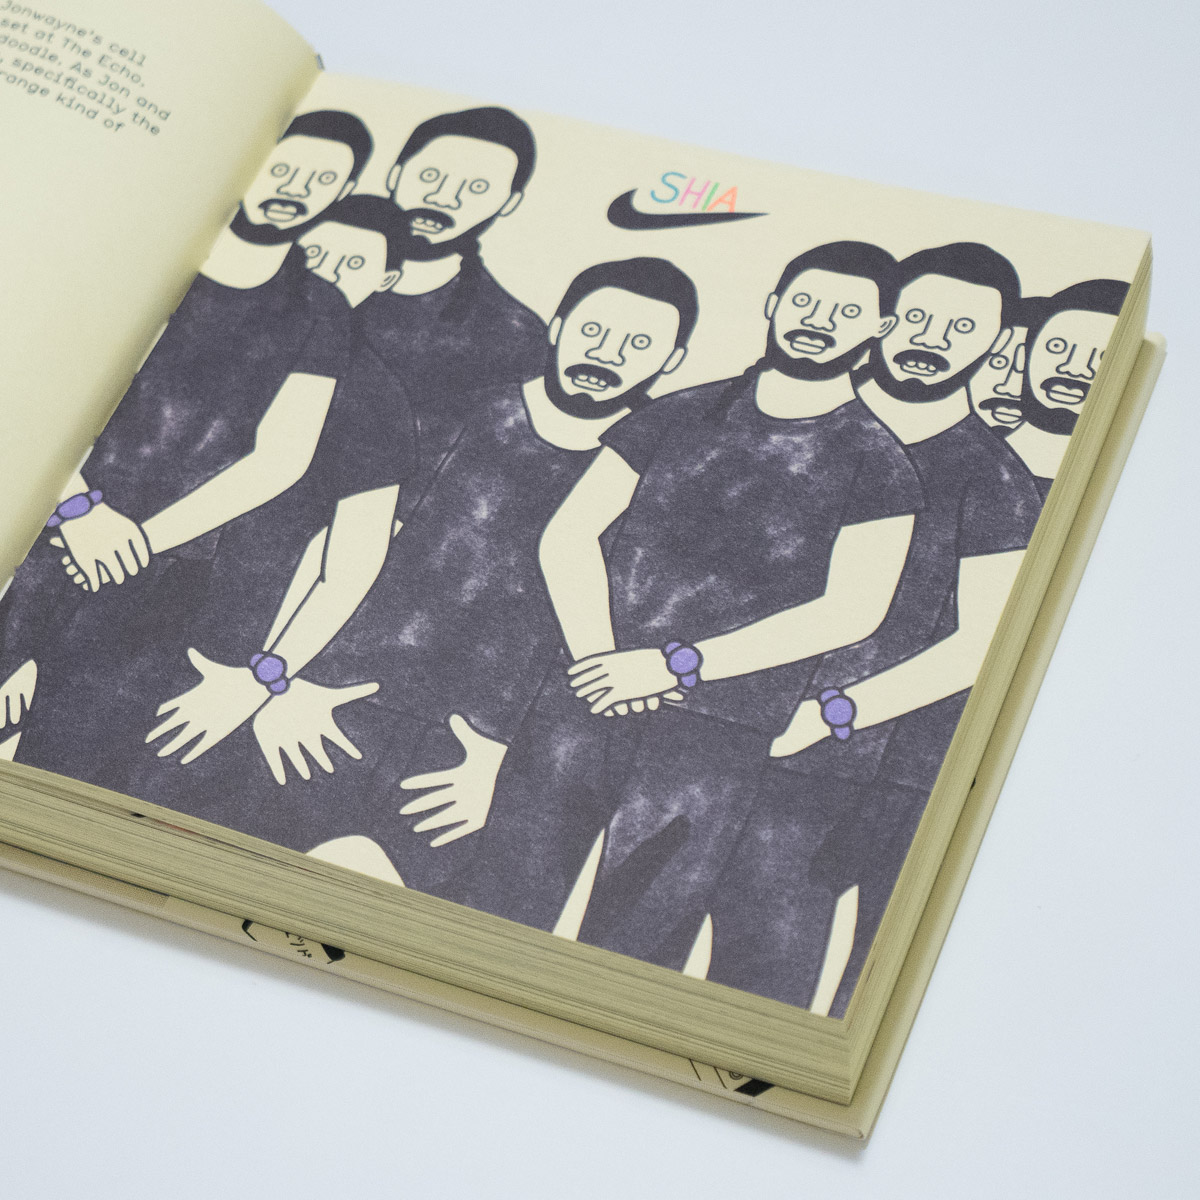 Shia LaBeouf — Gangster Doodles book